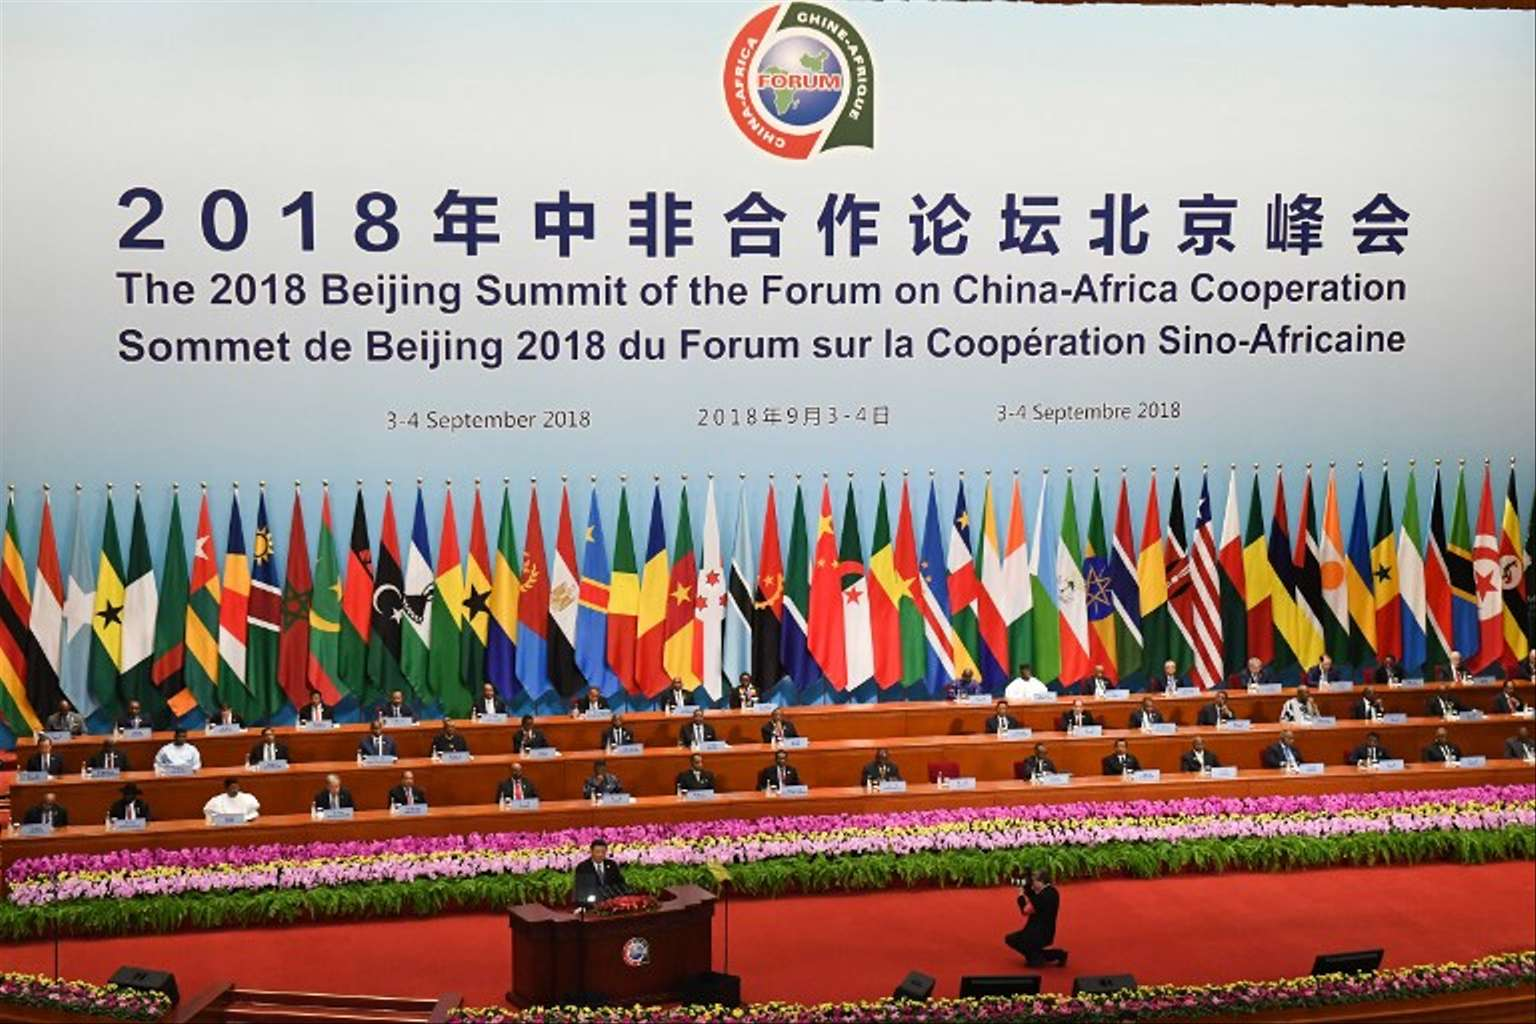 """China's President Xi Jinping (front) gives a speech during the opening ceremony of the Forum on China-Africa Cooperation at the Great Hall of the People in Beijing on September 3, 2018. President Xi Jinping told African leaders on September 3 that China's investments on the continent have """"no political strings attached"""", pledging $60 billion in new development financing, even as Beijing is increasingly criticised over its debt-heavy projects abroad. / AFP PHOTO / POOL / MADOKA IKEGAMI"""